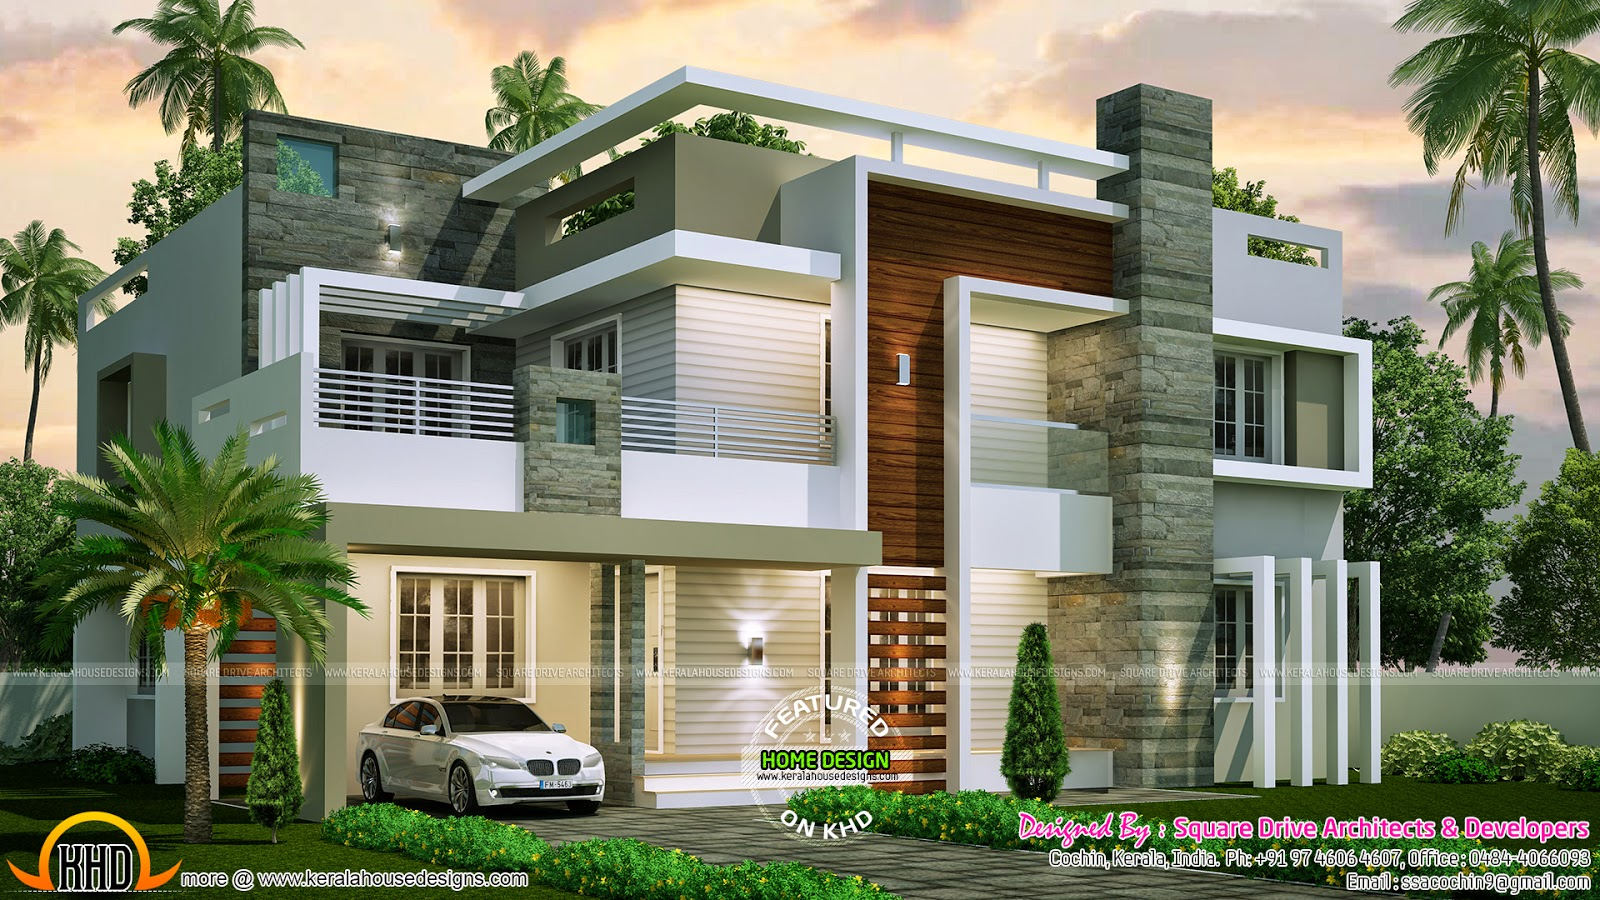 4 bedroom contemporary home design kerala home design for Home design